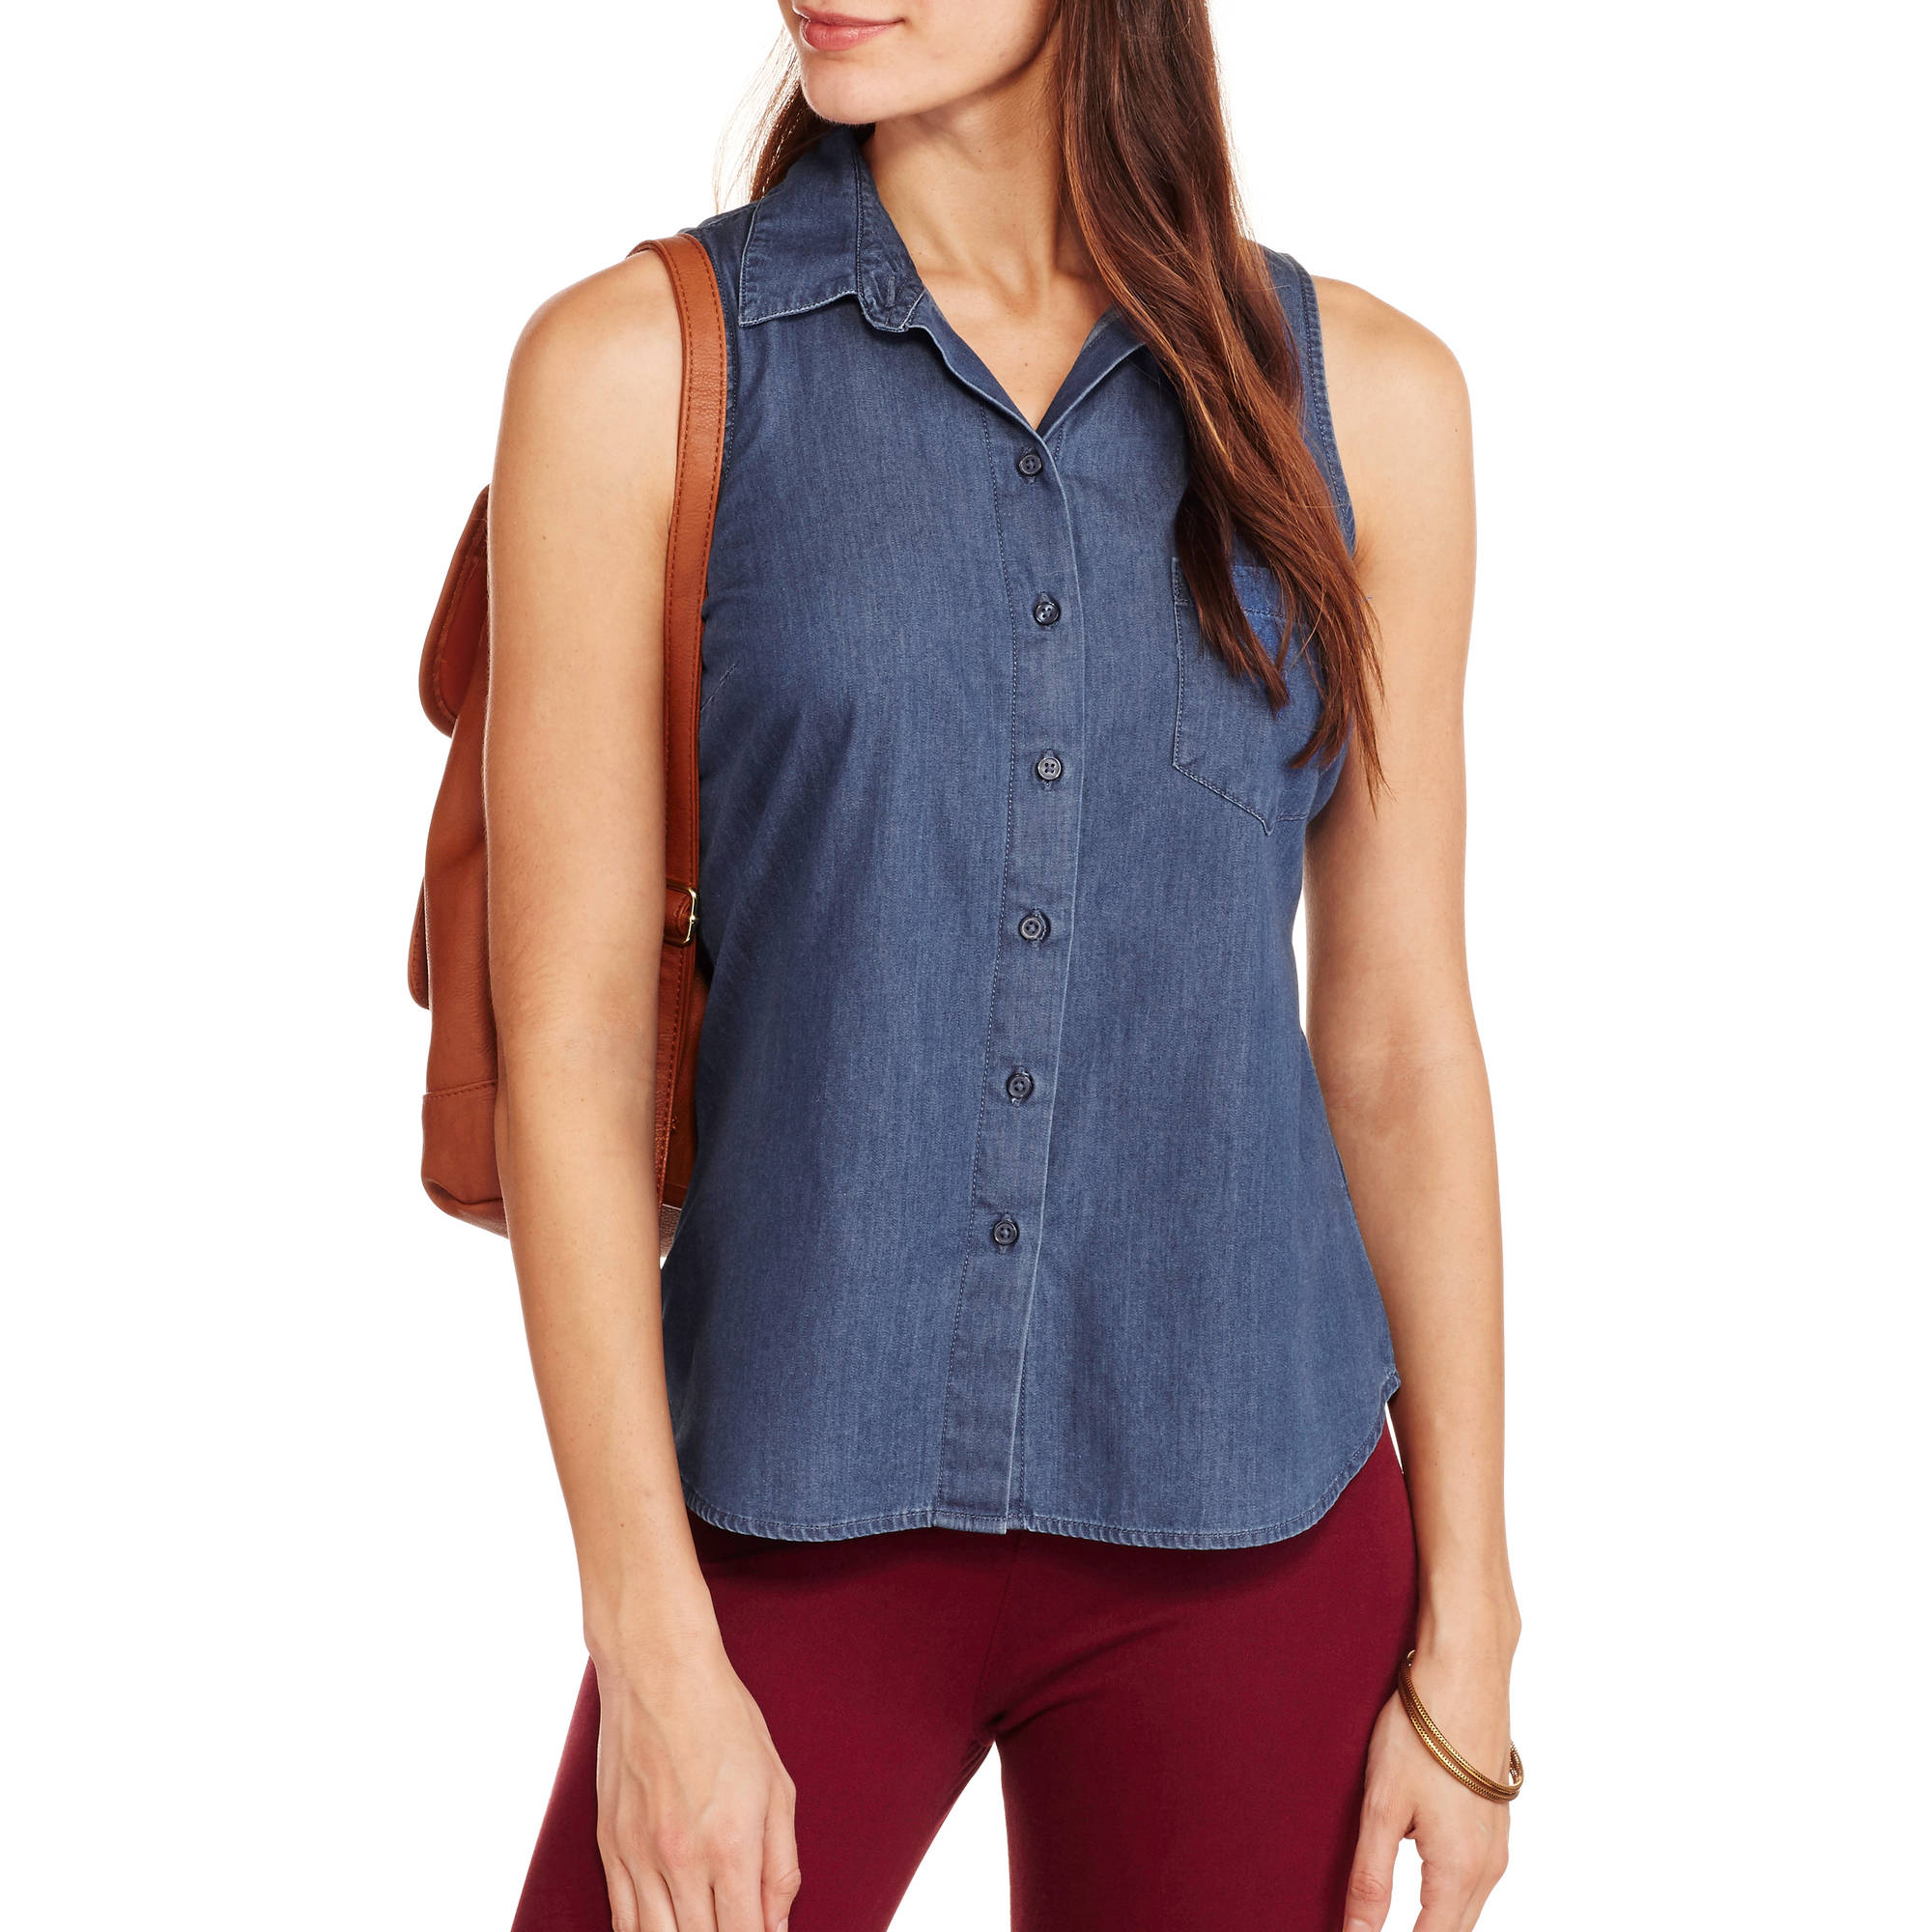 Faded Glory Women's Classic Americana Sleeveless Button-Front Top